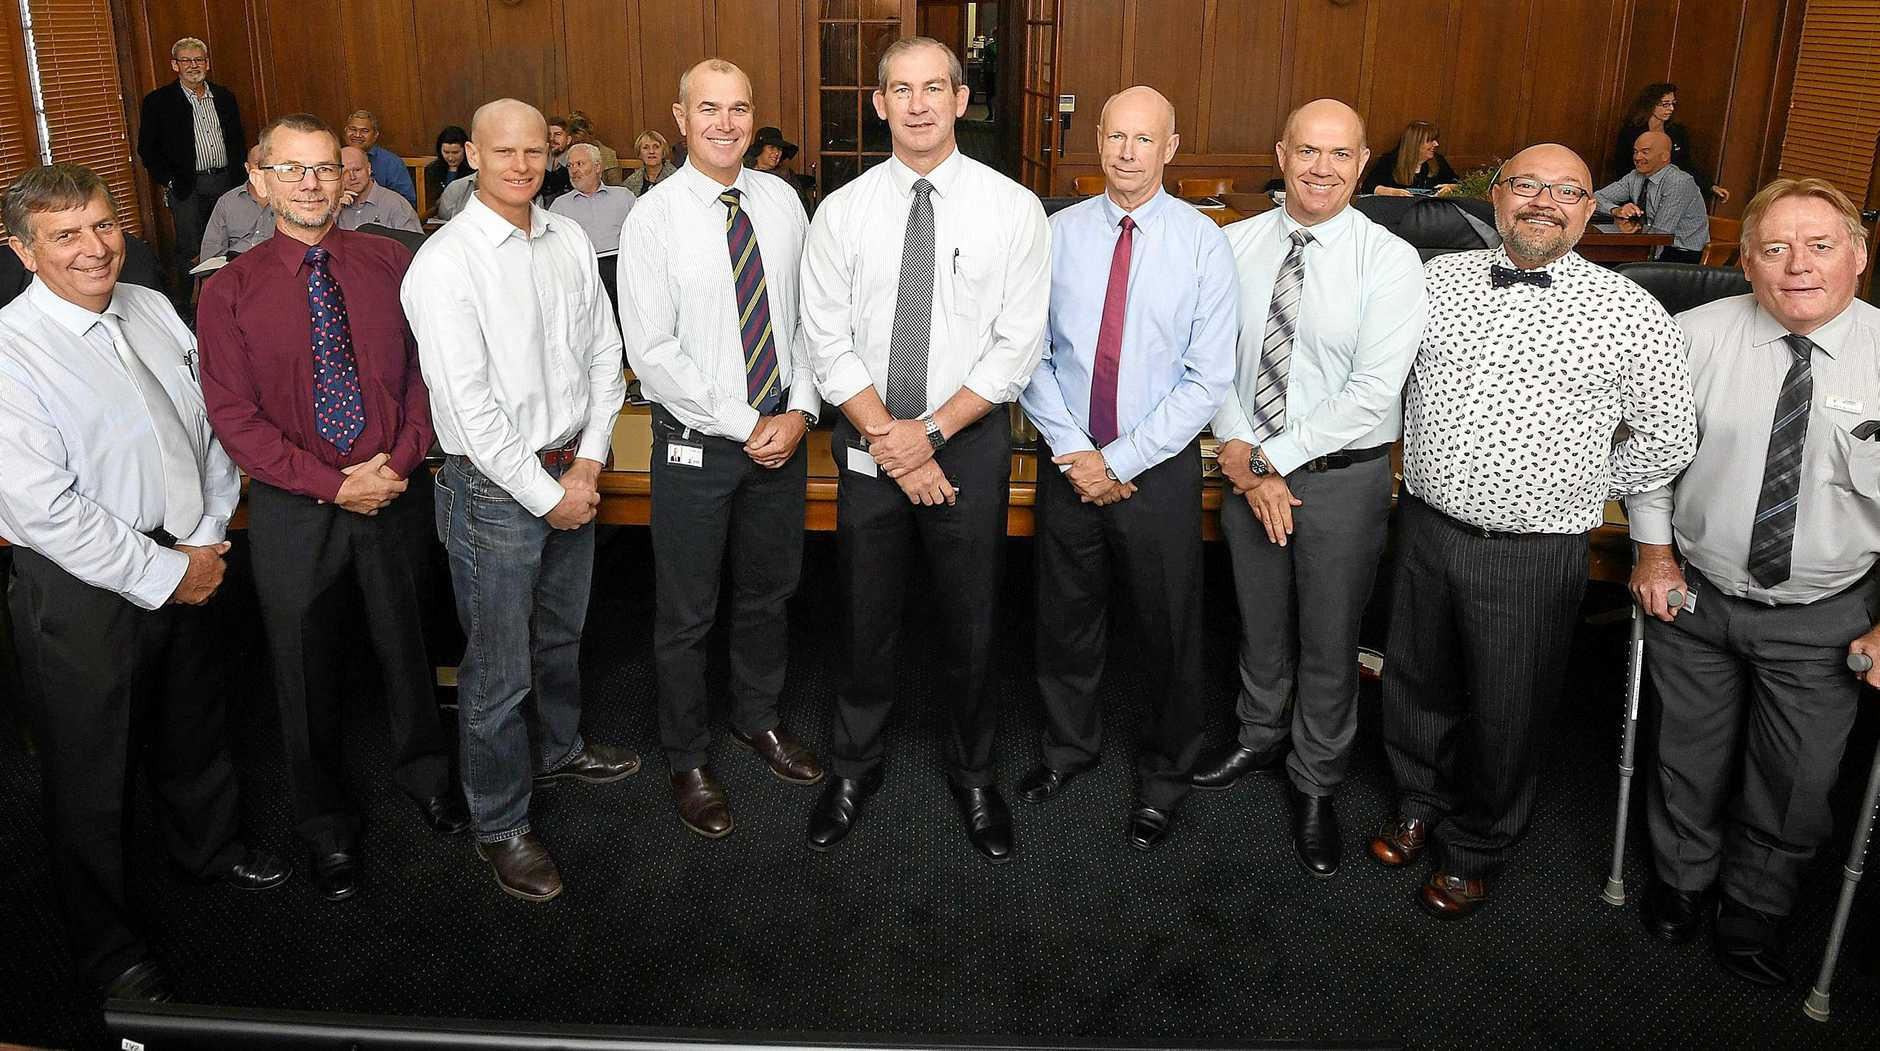 THE BOYS: Gympie Council 2018 Hilary Smerdon, Dan Stewart, Glen Hartwig, Bob Leitch, Mick Curran, Bob Fredman, Mal Gear, Daryl Dodt and Mark McDonald.